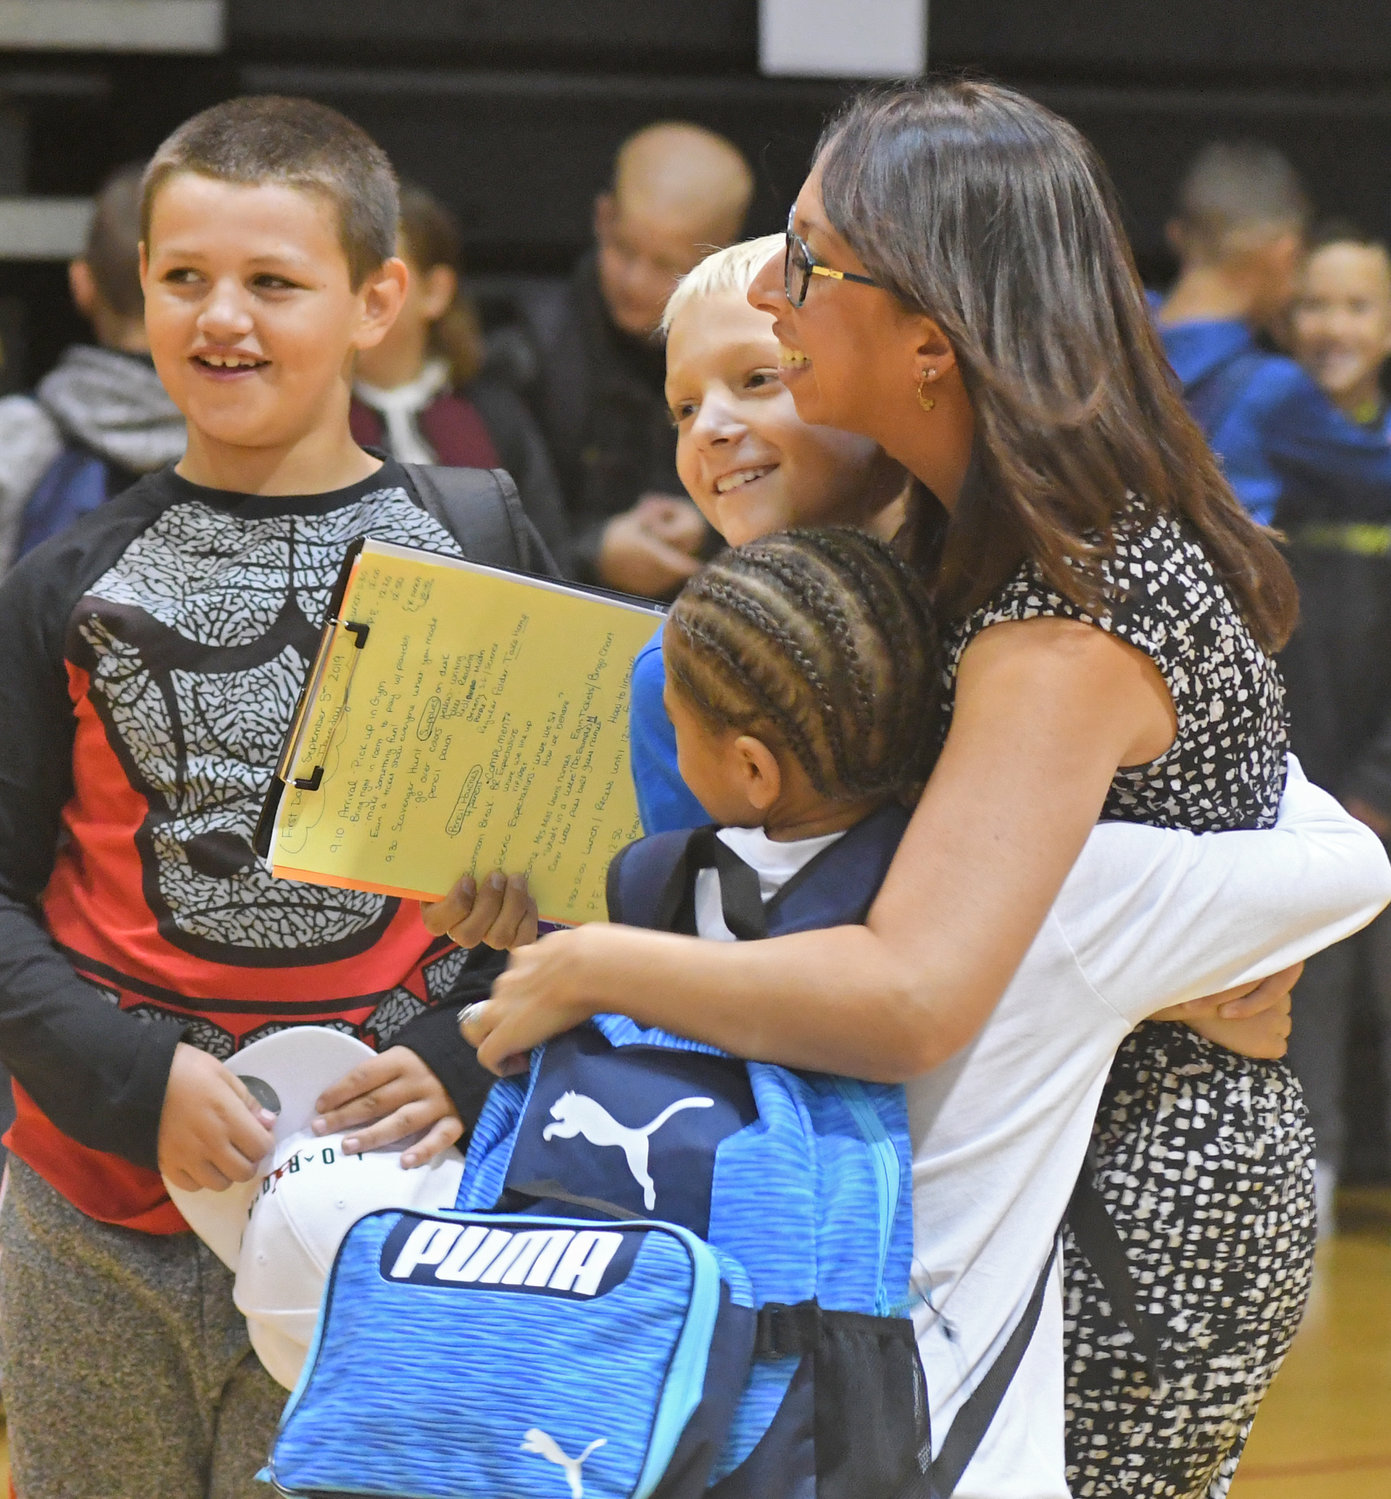 third grade teacher Mercedes Mills gets hugged by former students before the start of the new school year at Staley.